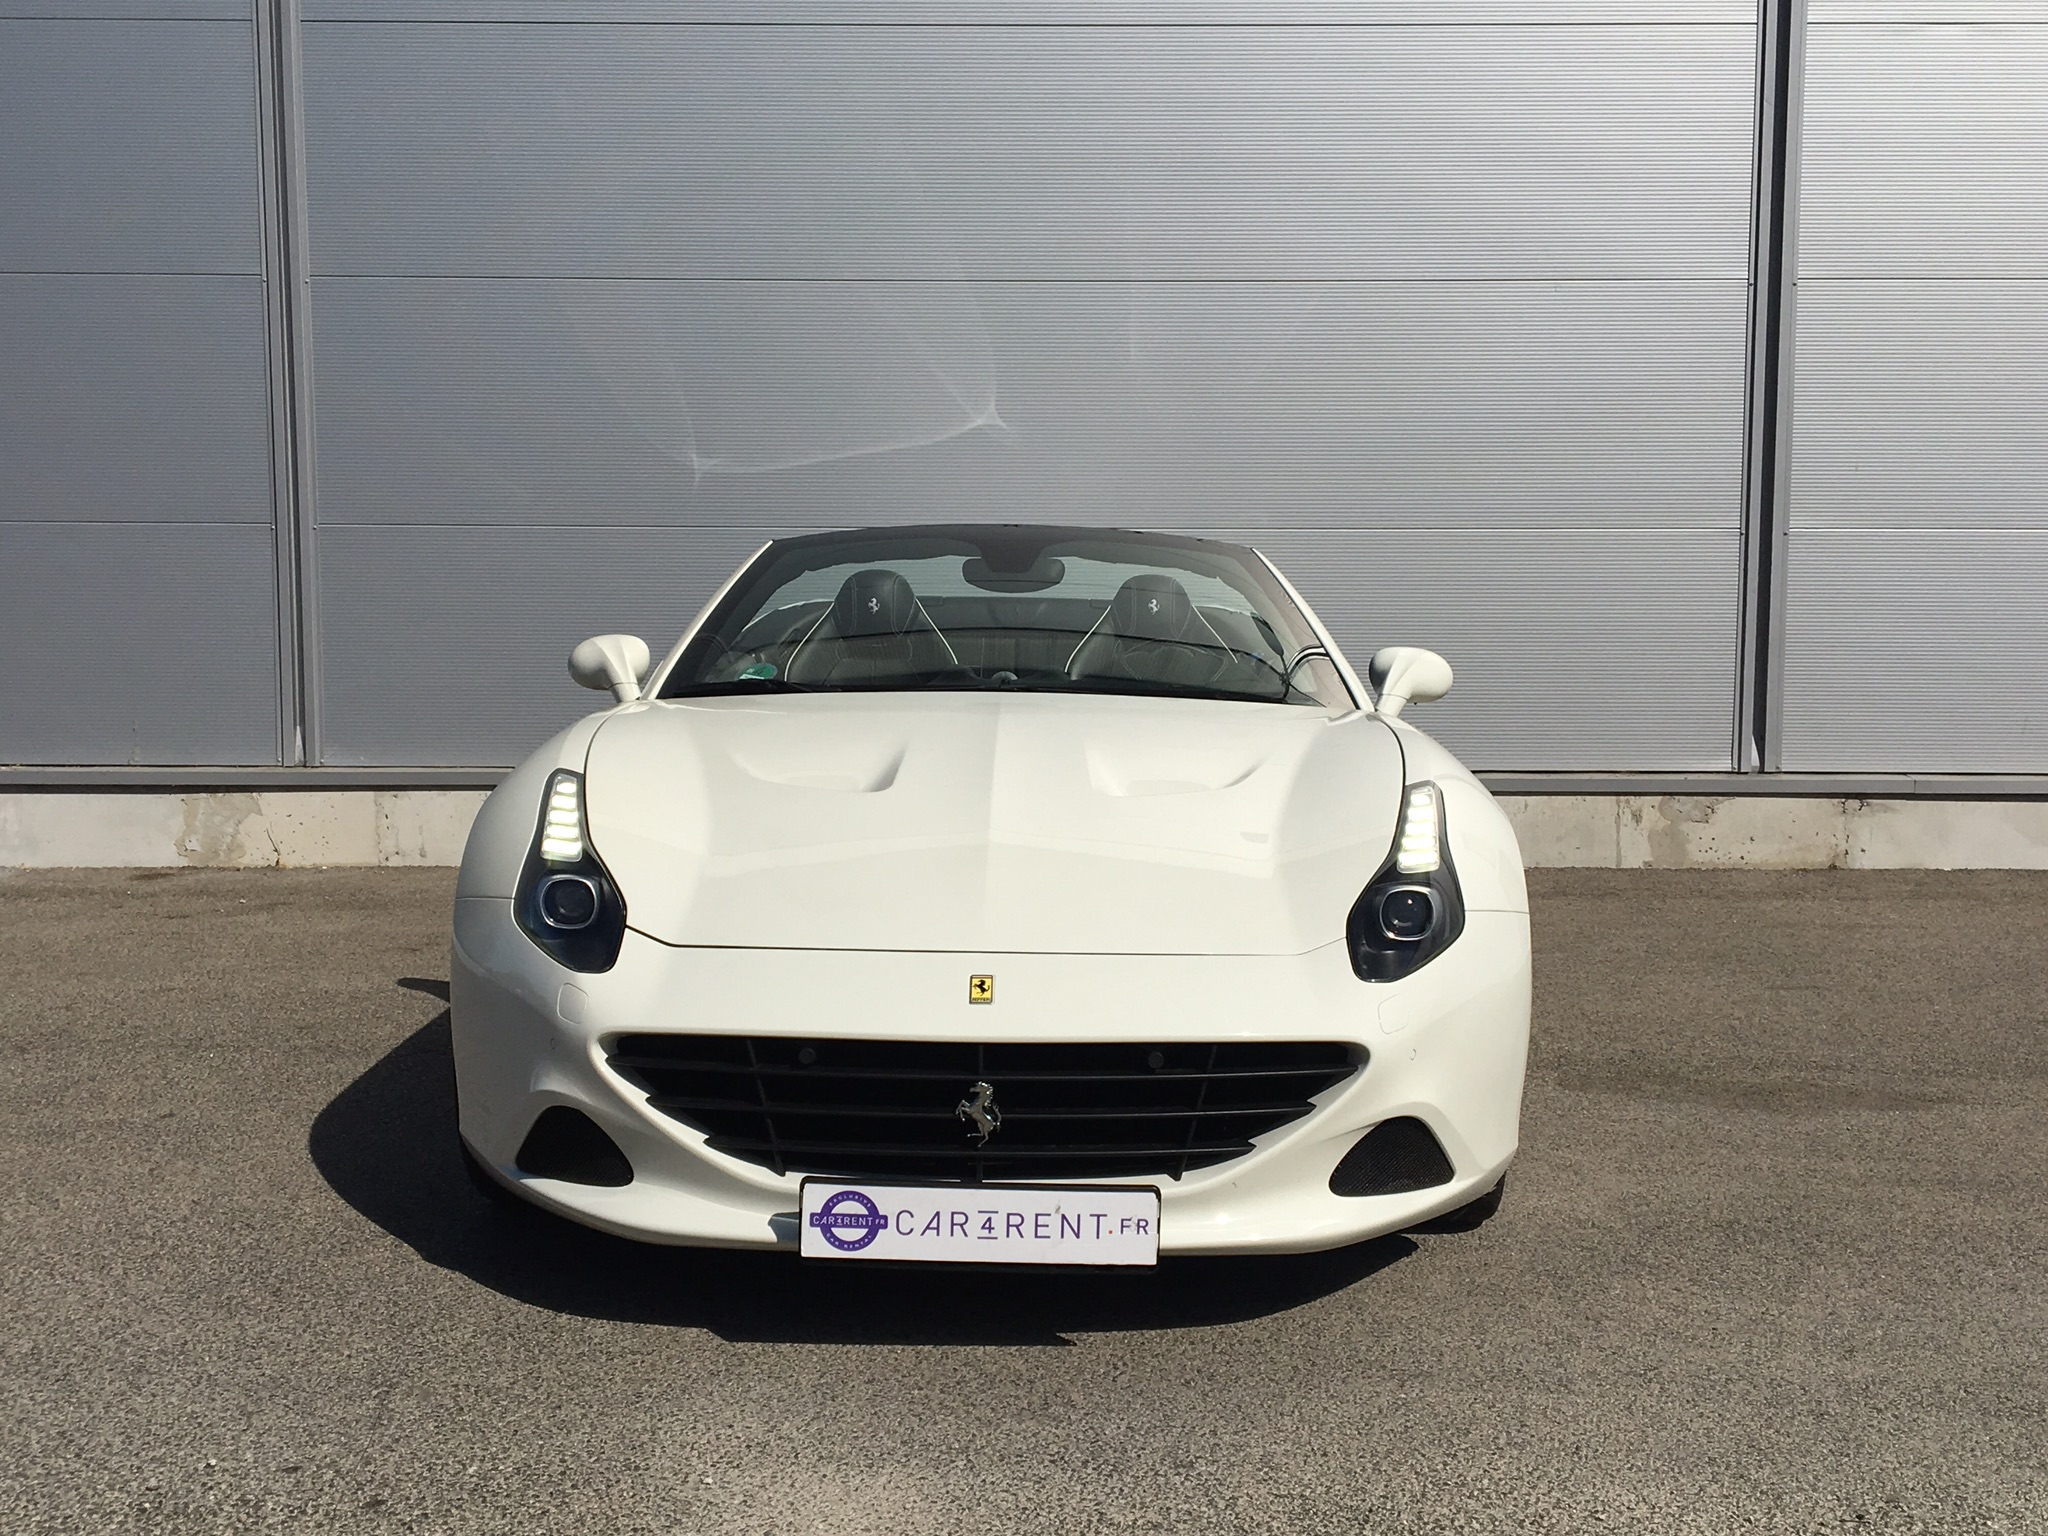 location ferrari california saint-topez Car4rent